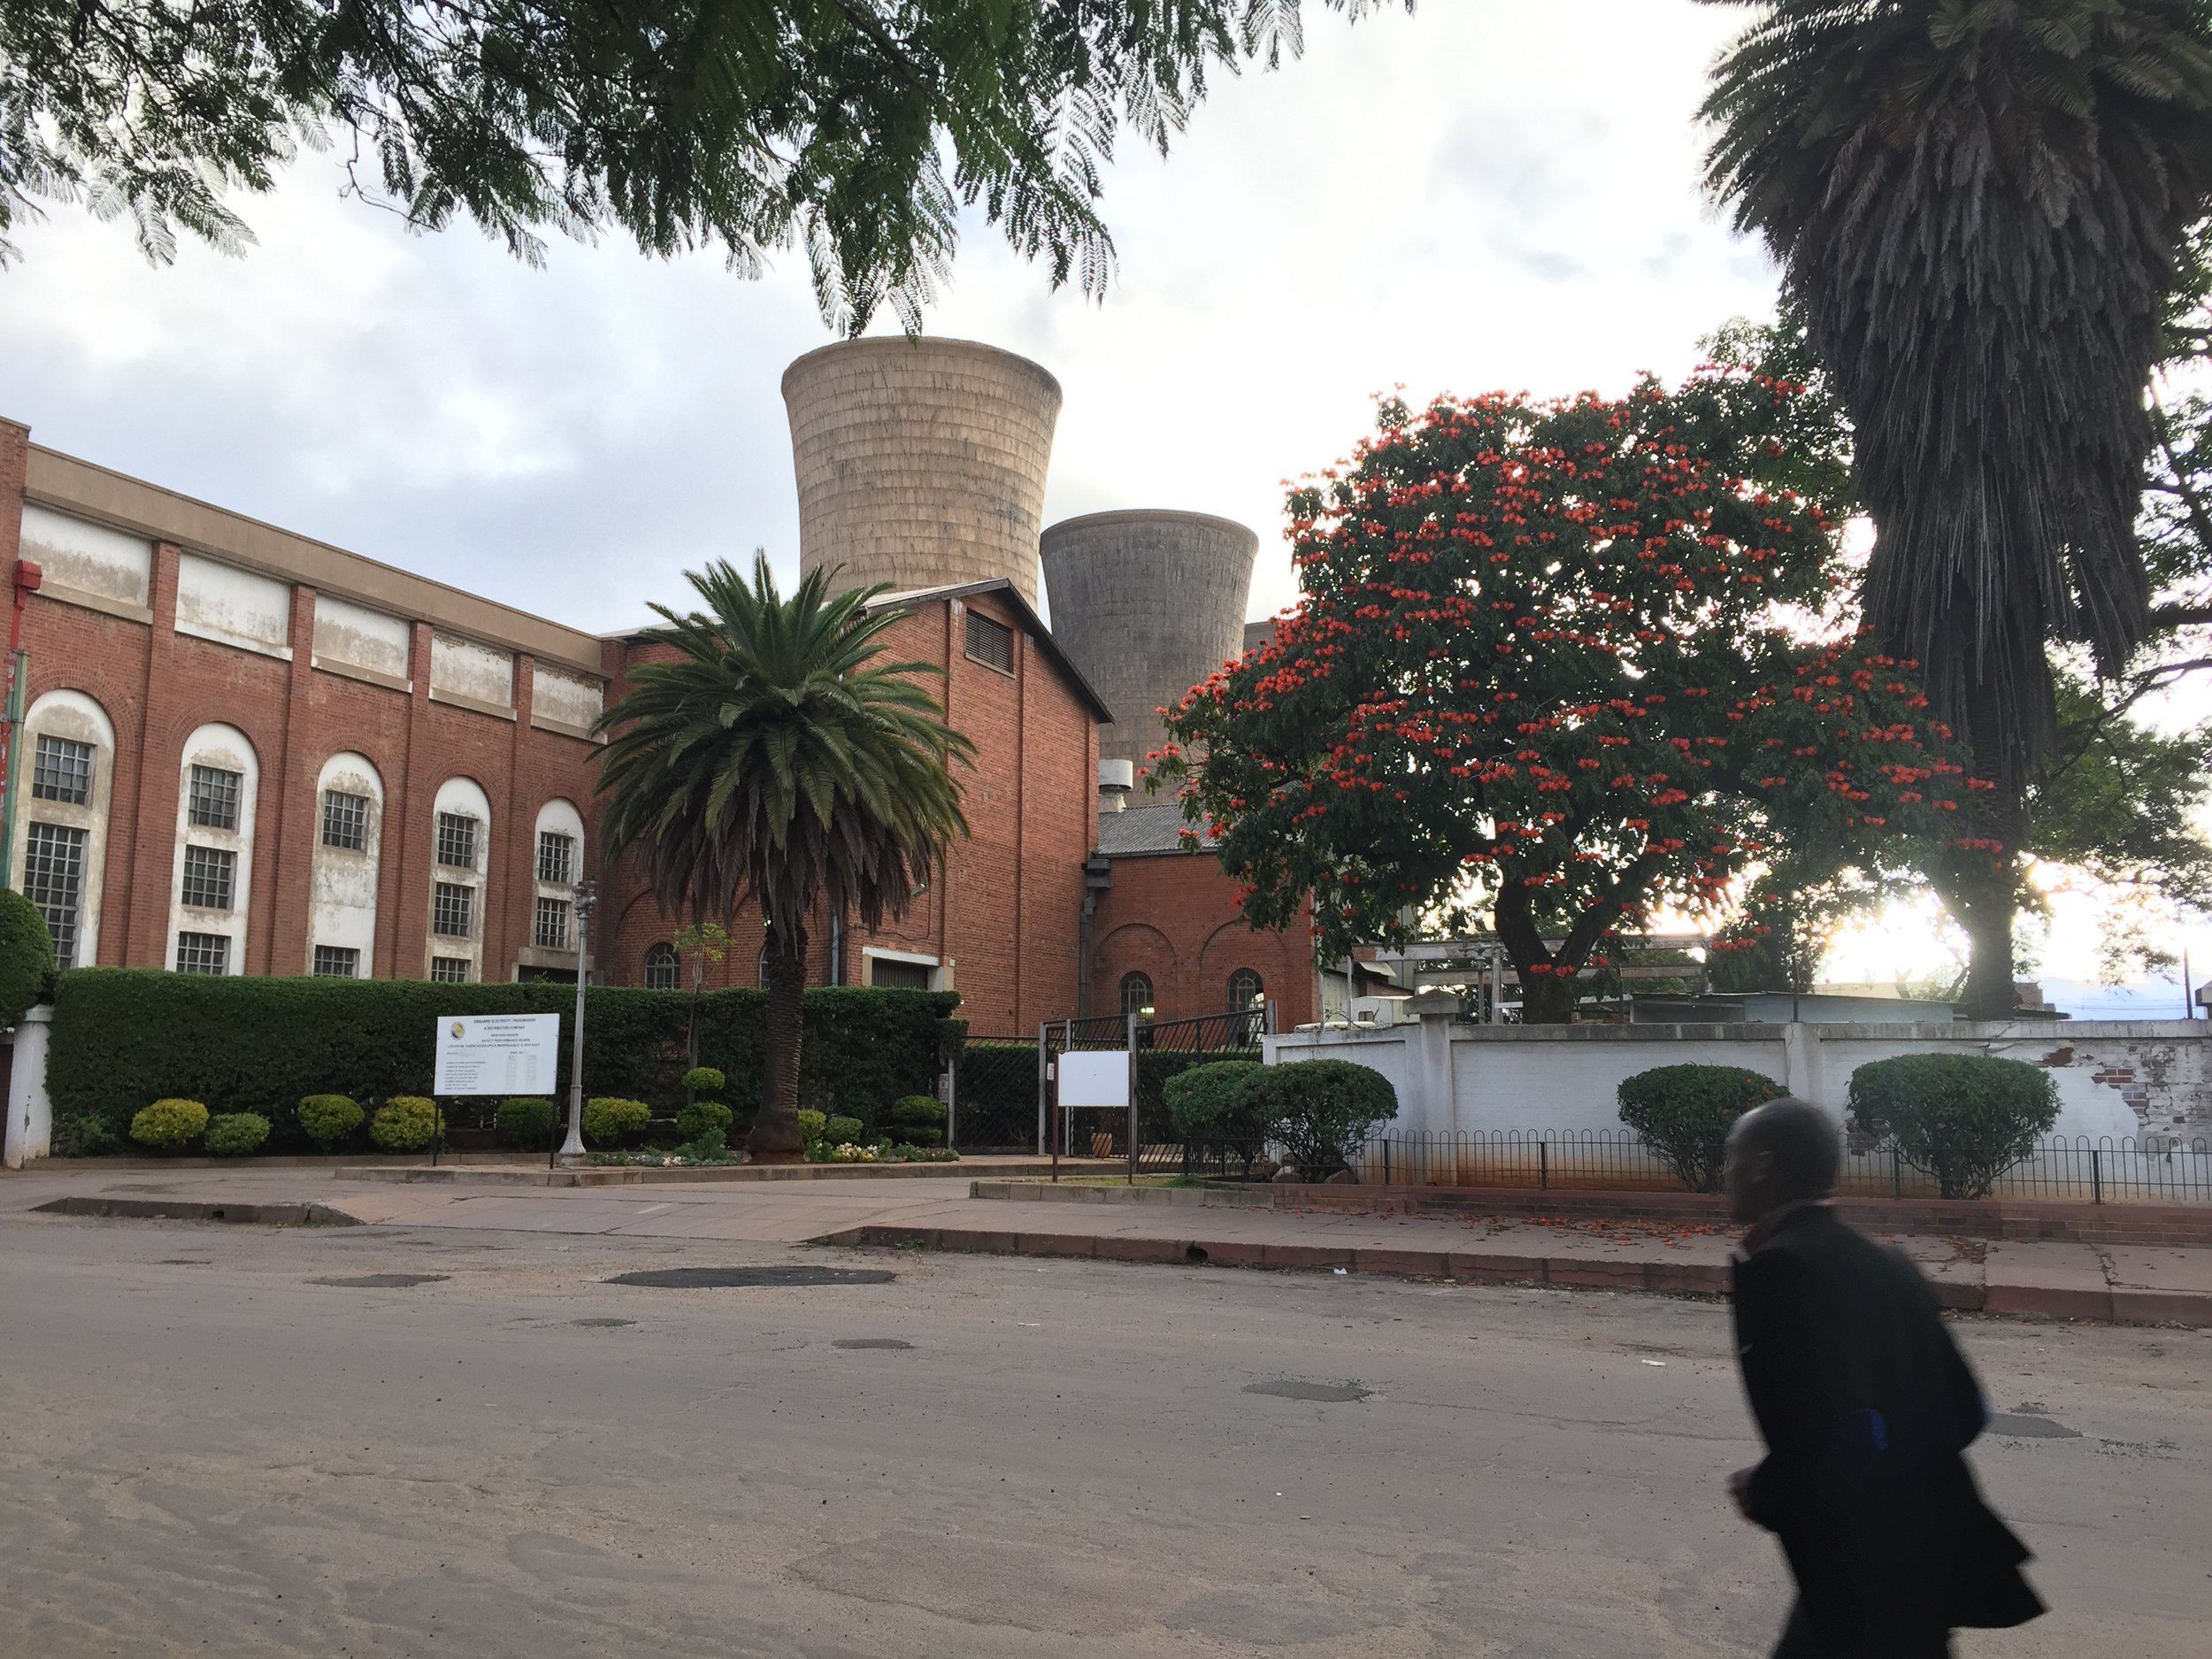 The Bulawayo (closed) power station, one of the few large buildings in the city.